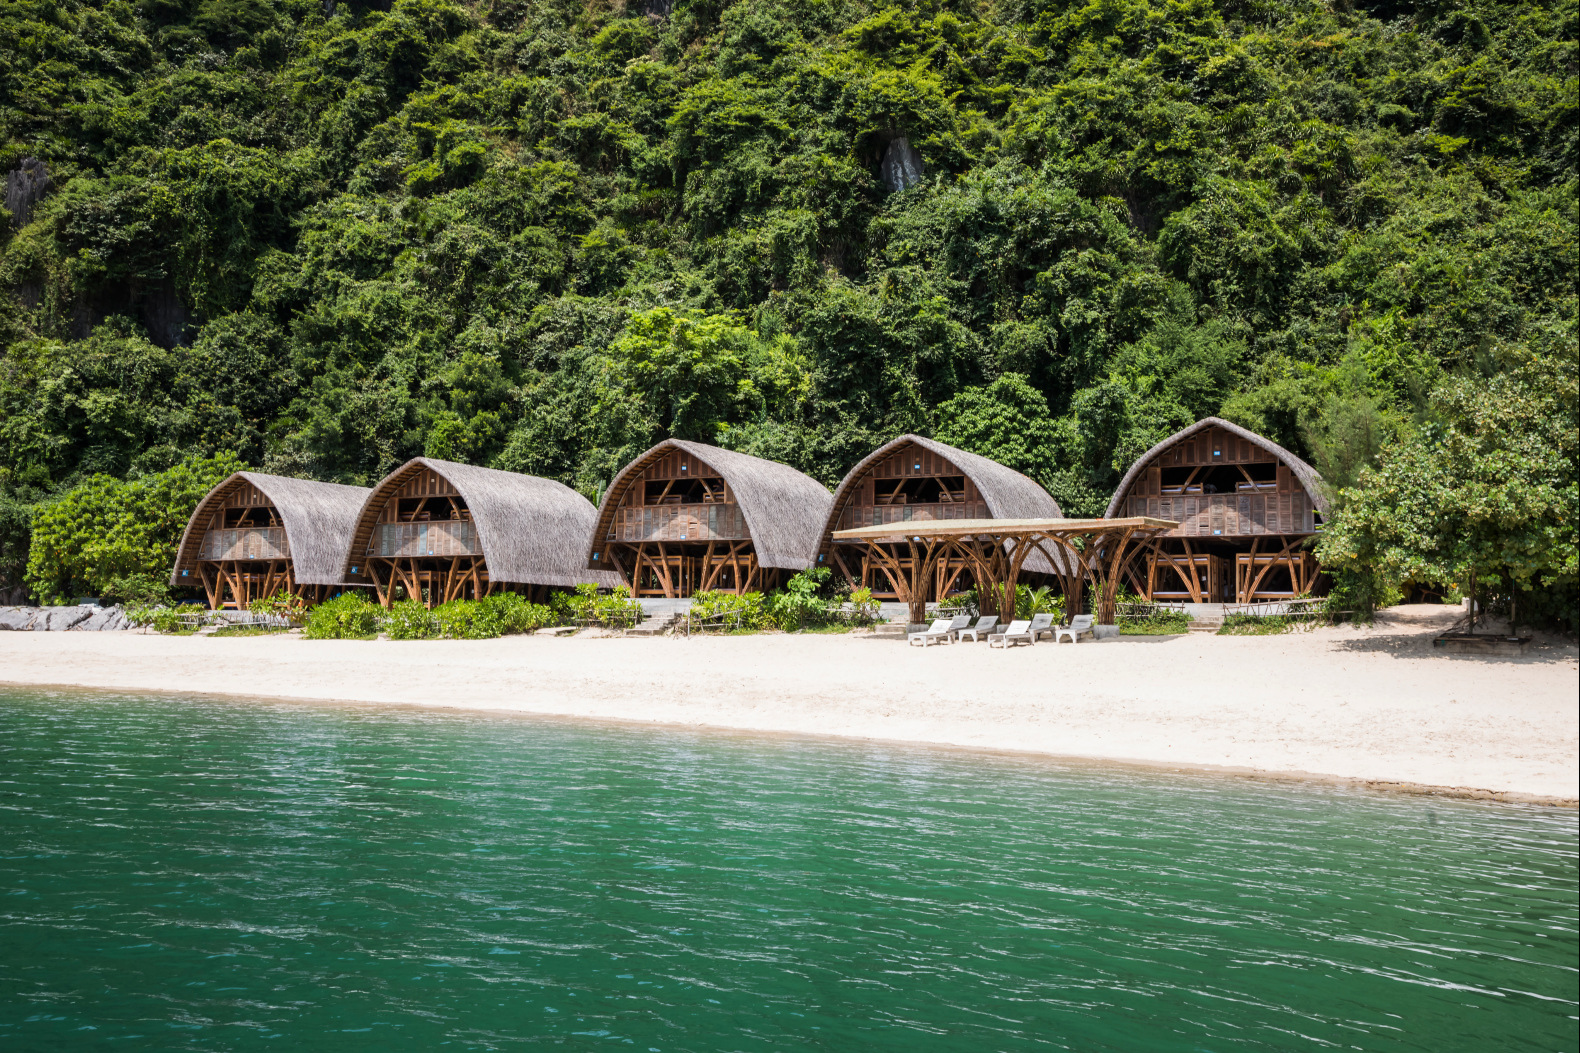 Escape the hustle and bustle of everyday life in these bamboo huts built on a remote Vietnamese beach